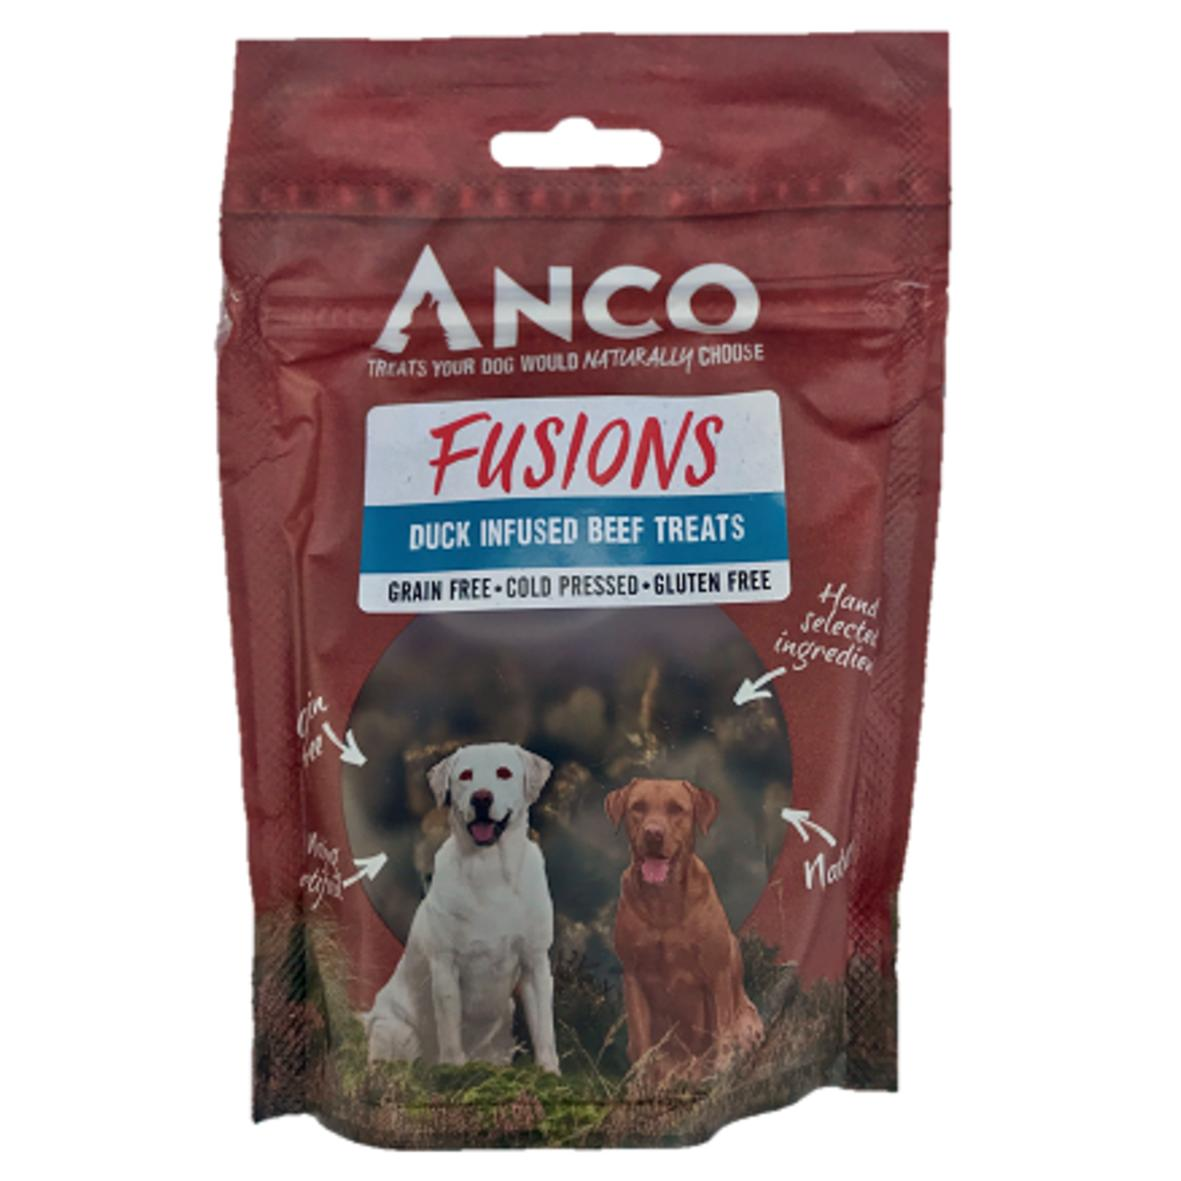 Anco Fusions Duck Infused Beef Treats 100gm